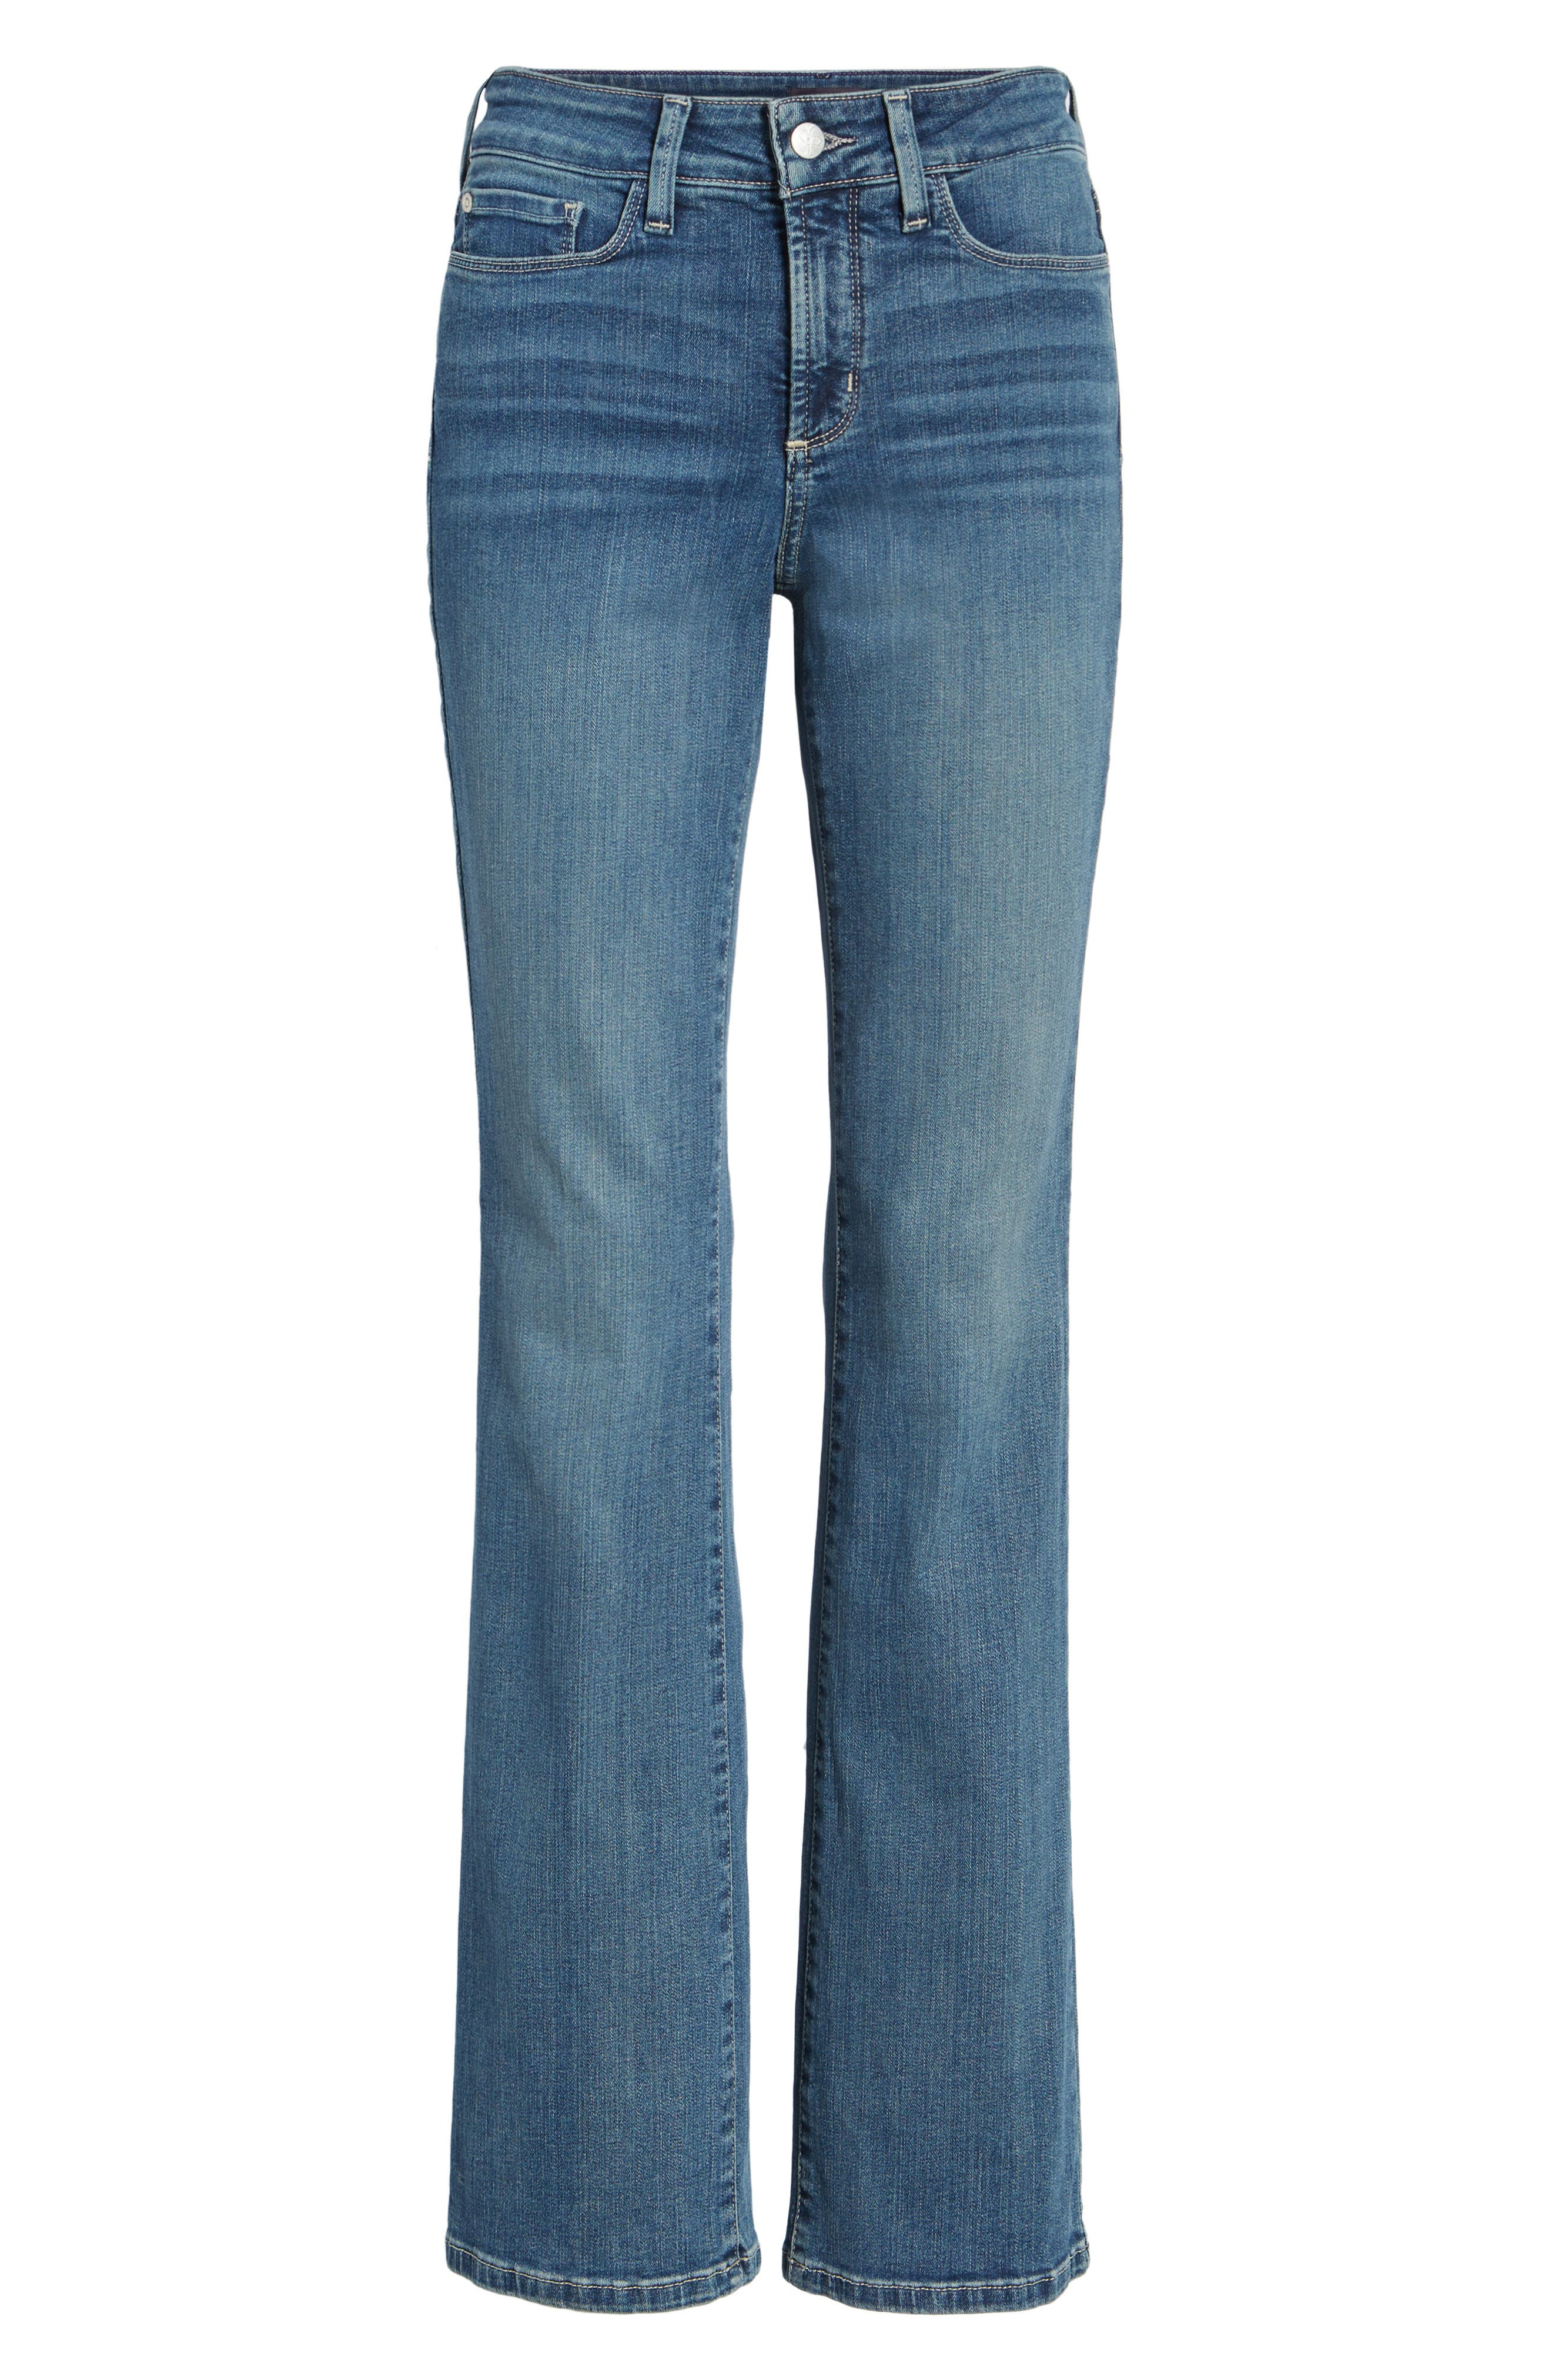 Barbara Stretch Bootcut Jeans,                             Alternate thumbnail 4, color,                             HEYBURN